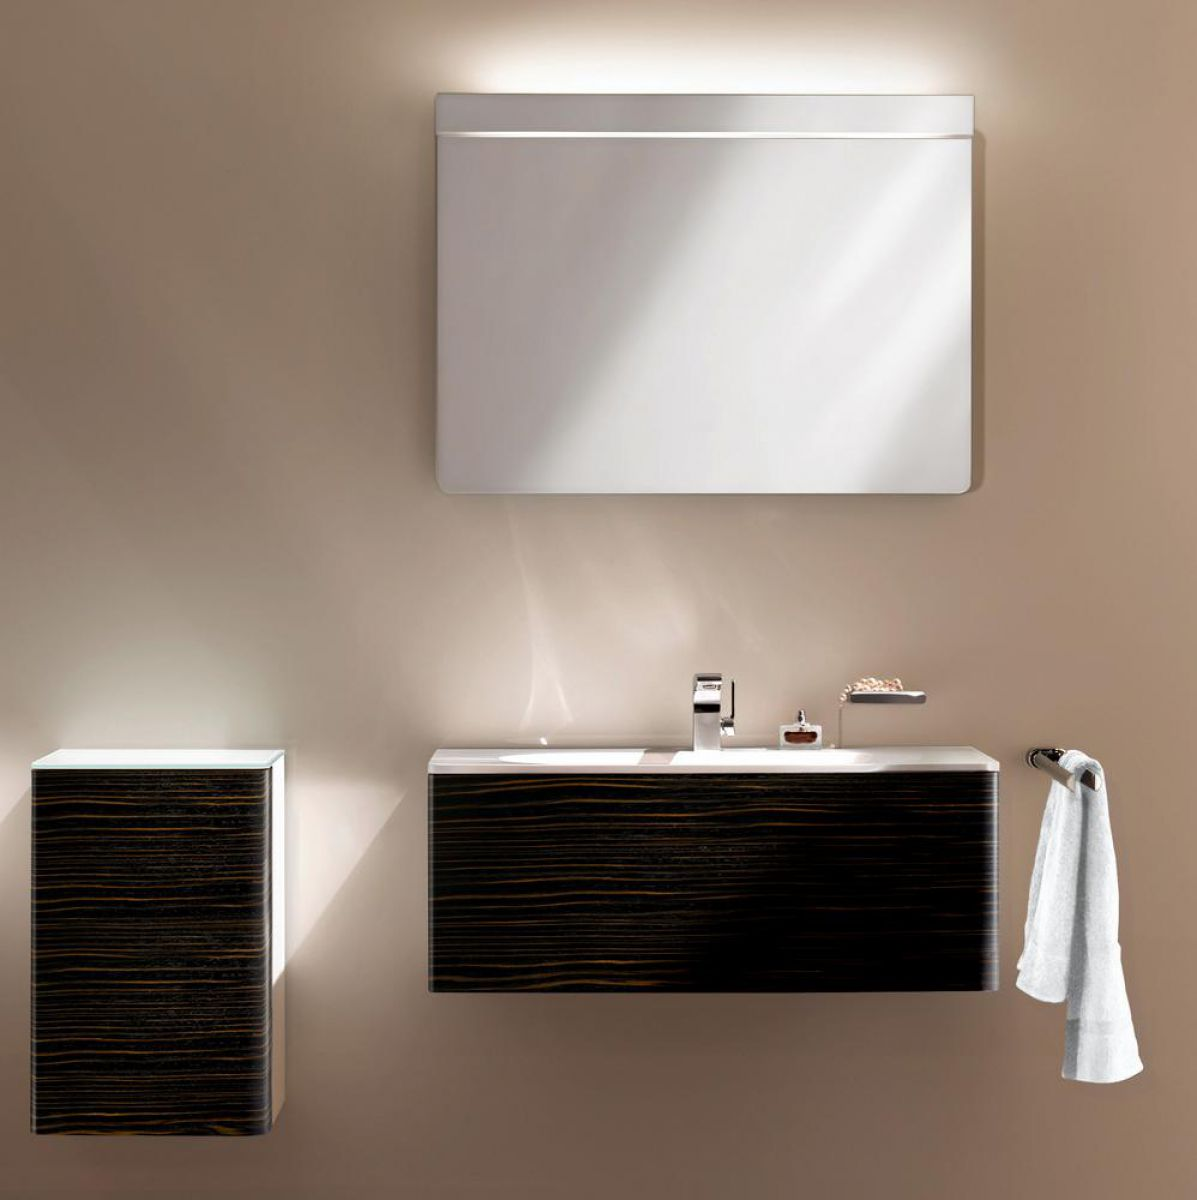 keuco elegance light mirror uk bathrooms. Black Bedroom Furniture Sets. Home Design Ideas